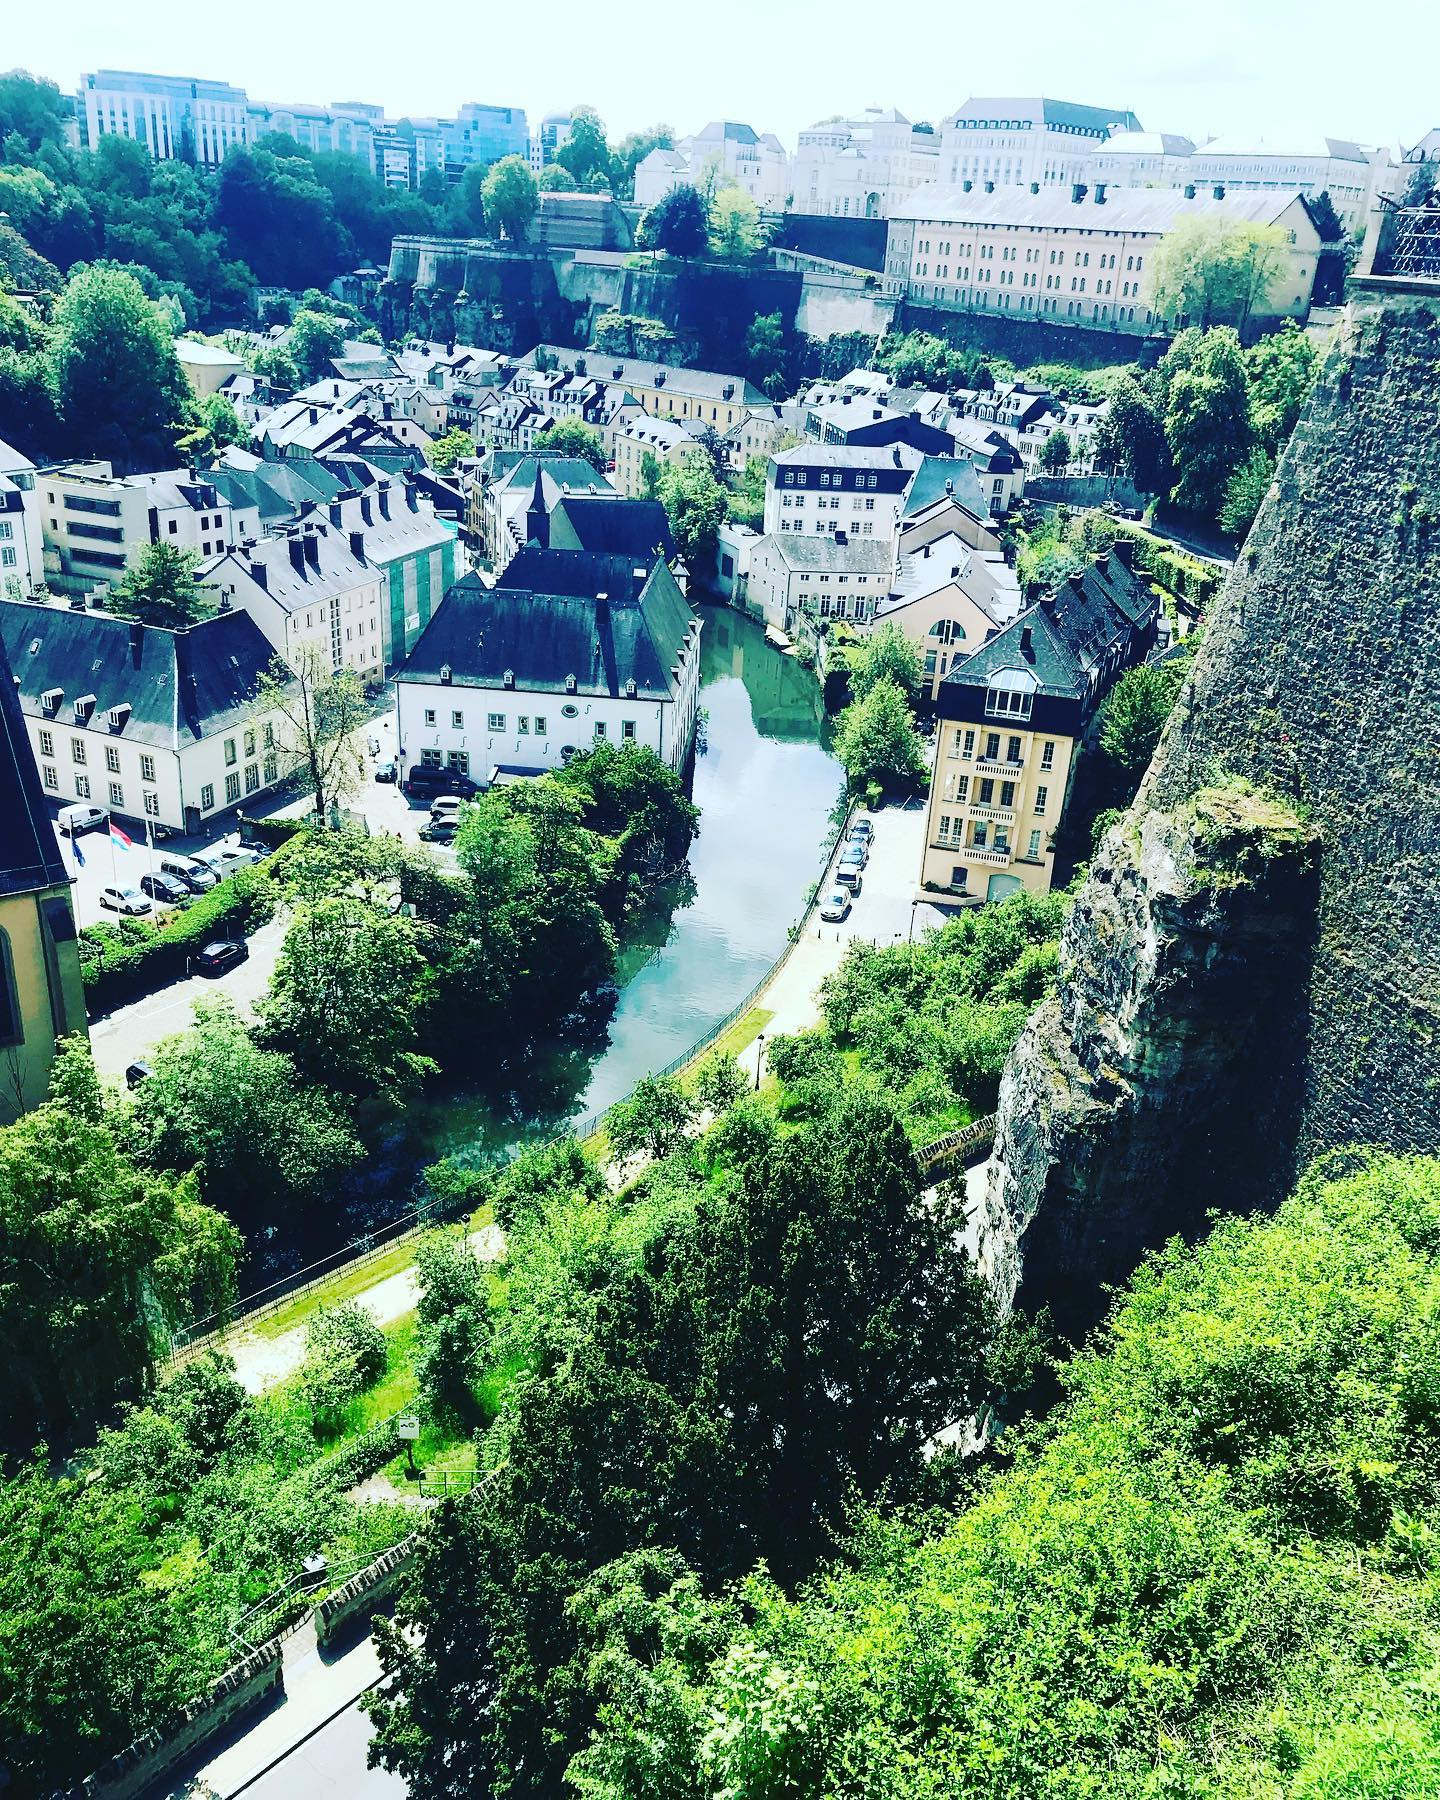 The Luxembourg Album 🇱🇺